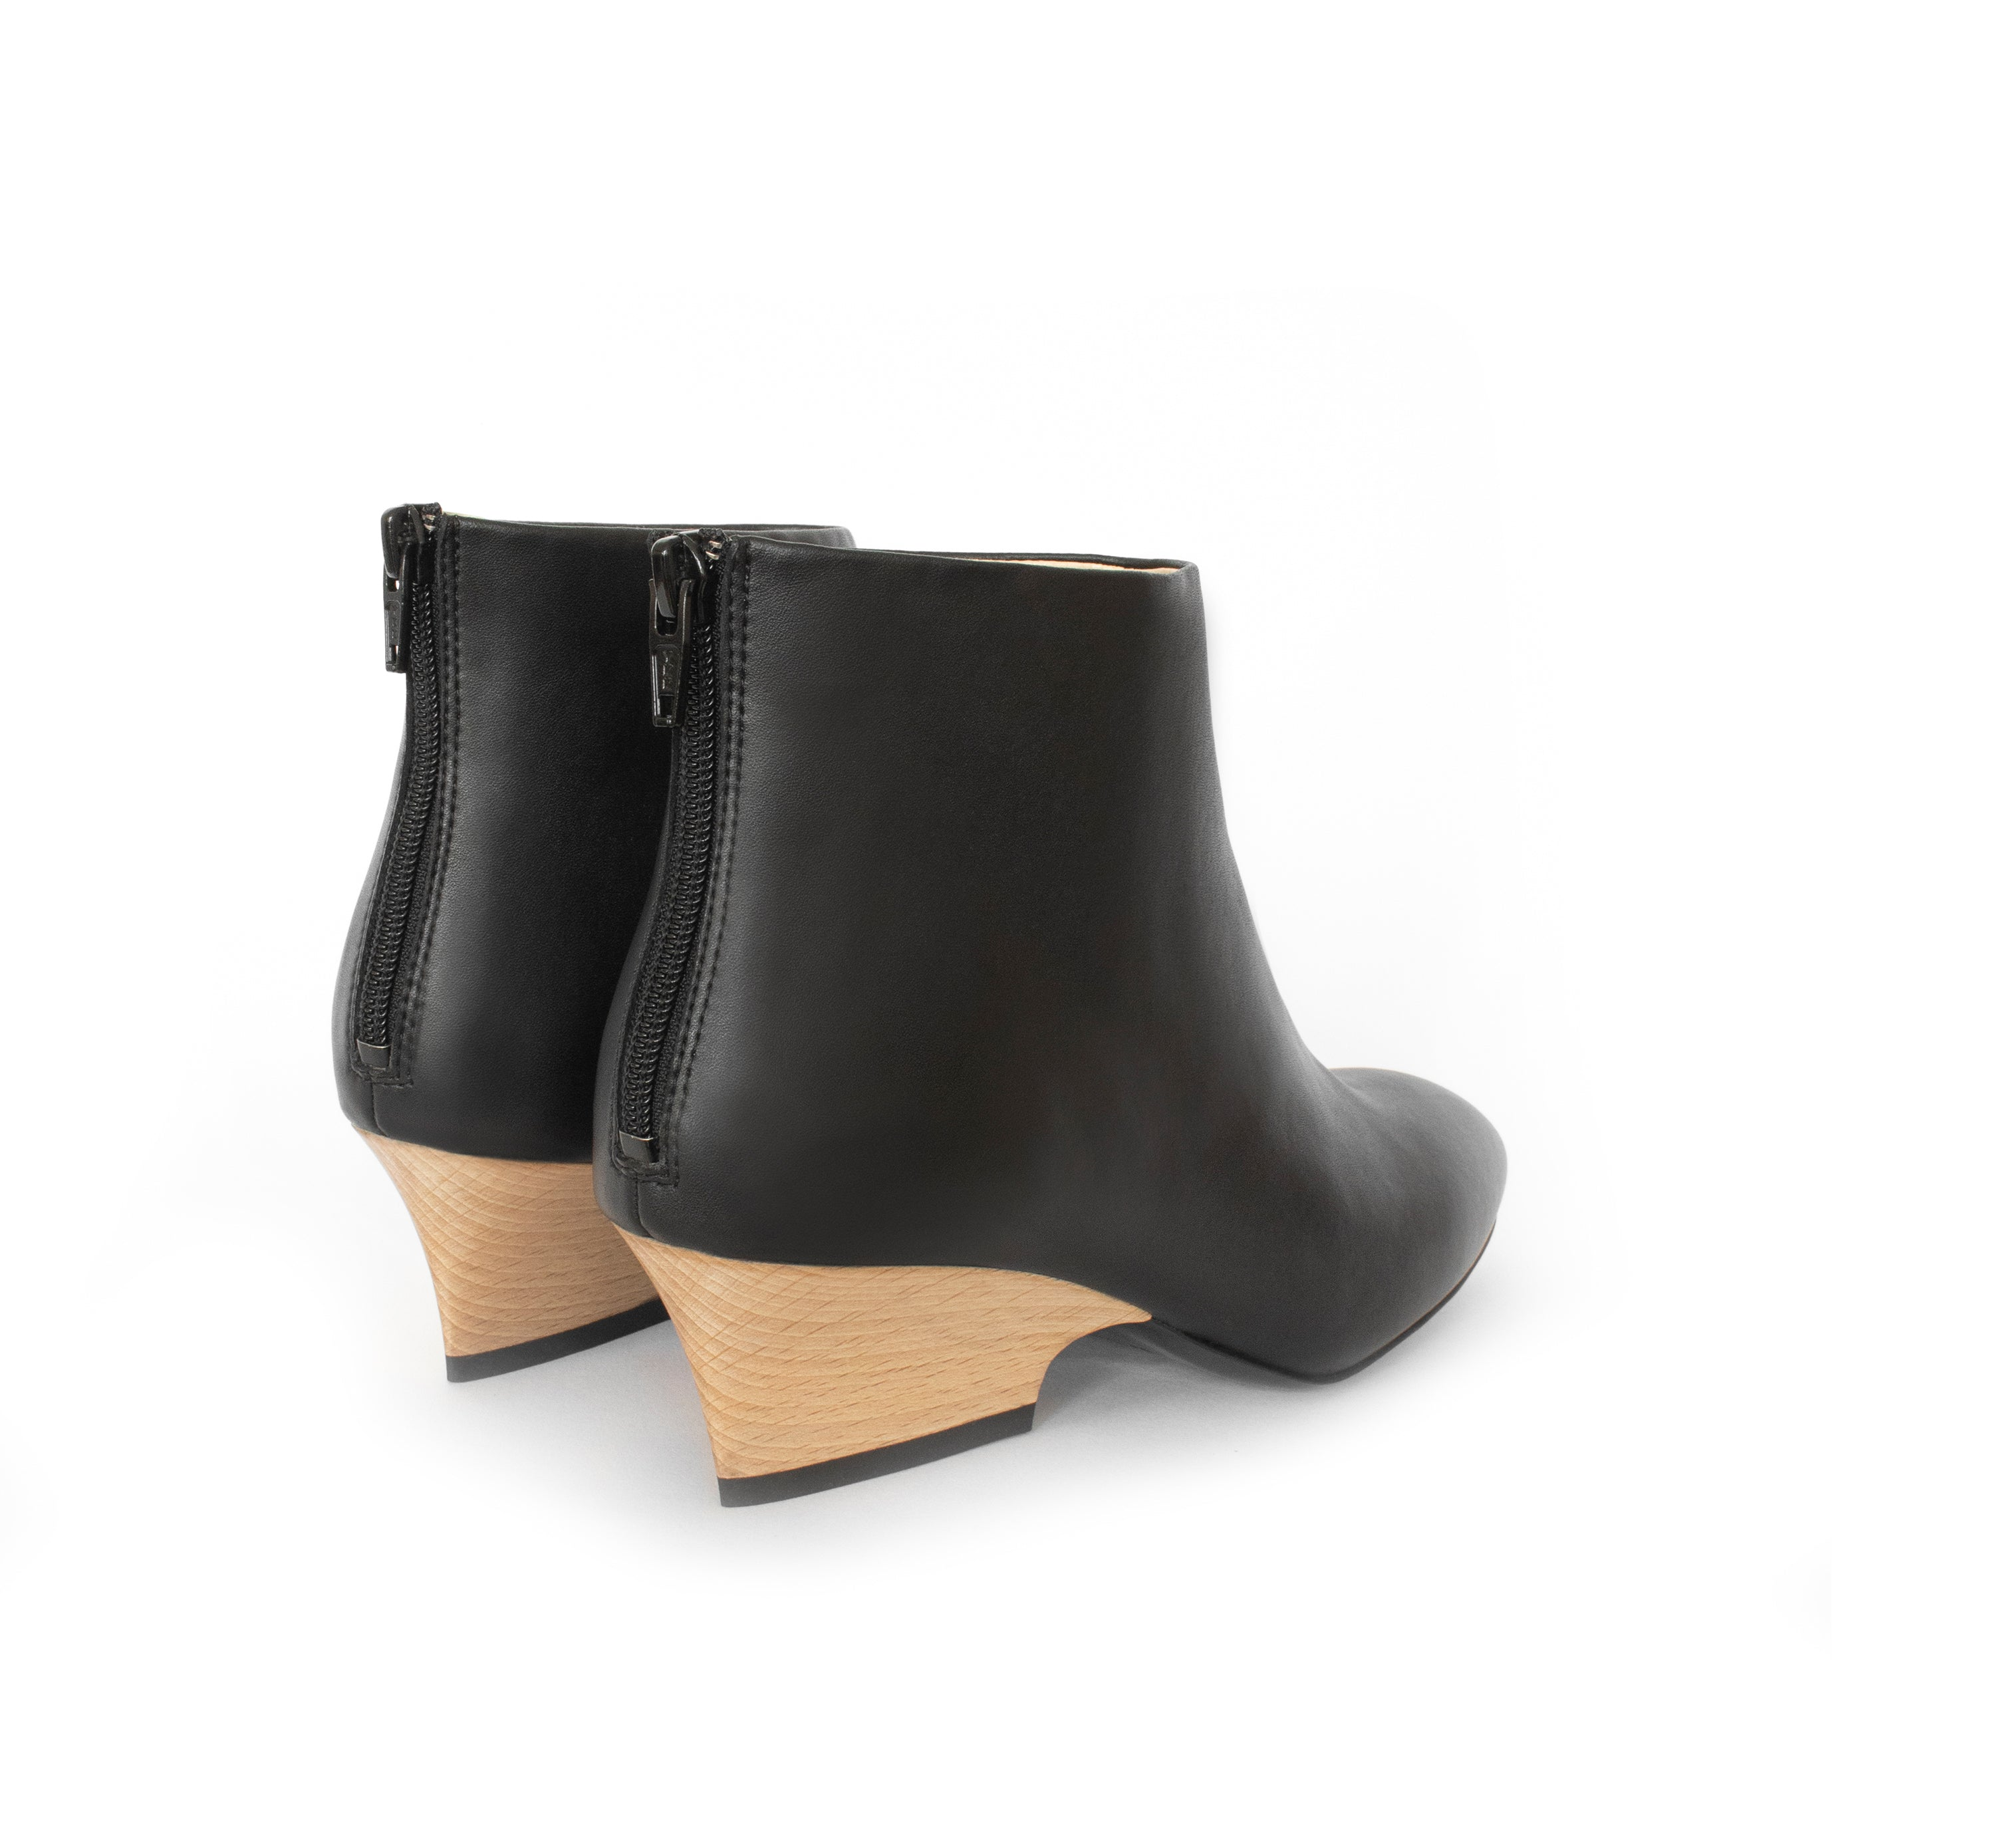 Black Faux-leather Bootie with a curved design mid-heel in light brown wood, back zipper.